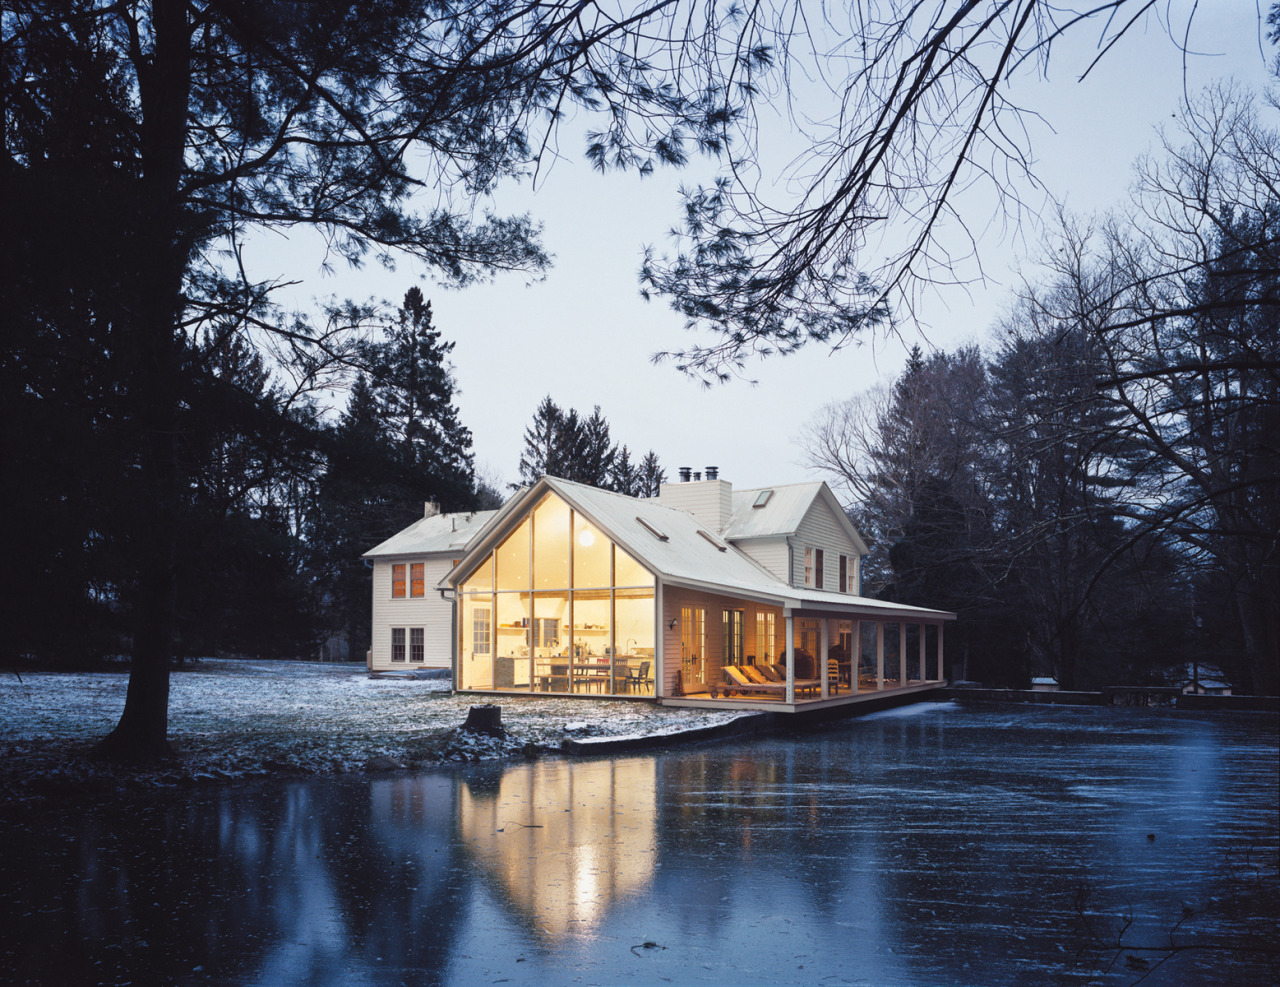 cabinporn:  The Floating Farmhouse in Eldred, New York. Restored by Givone Home. More photos.